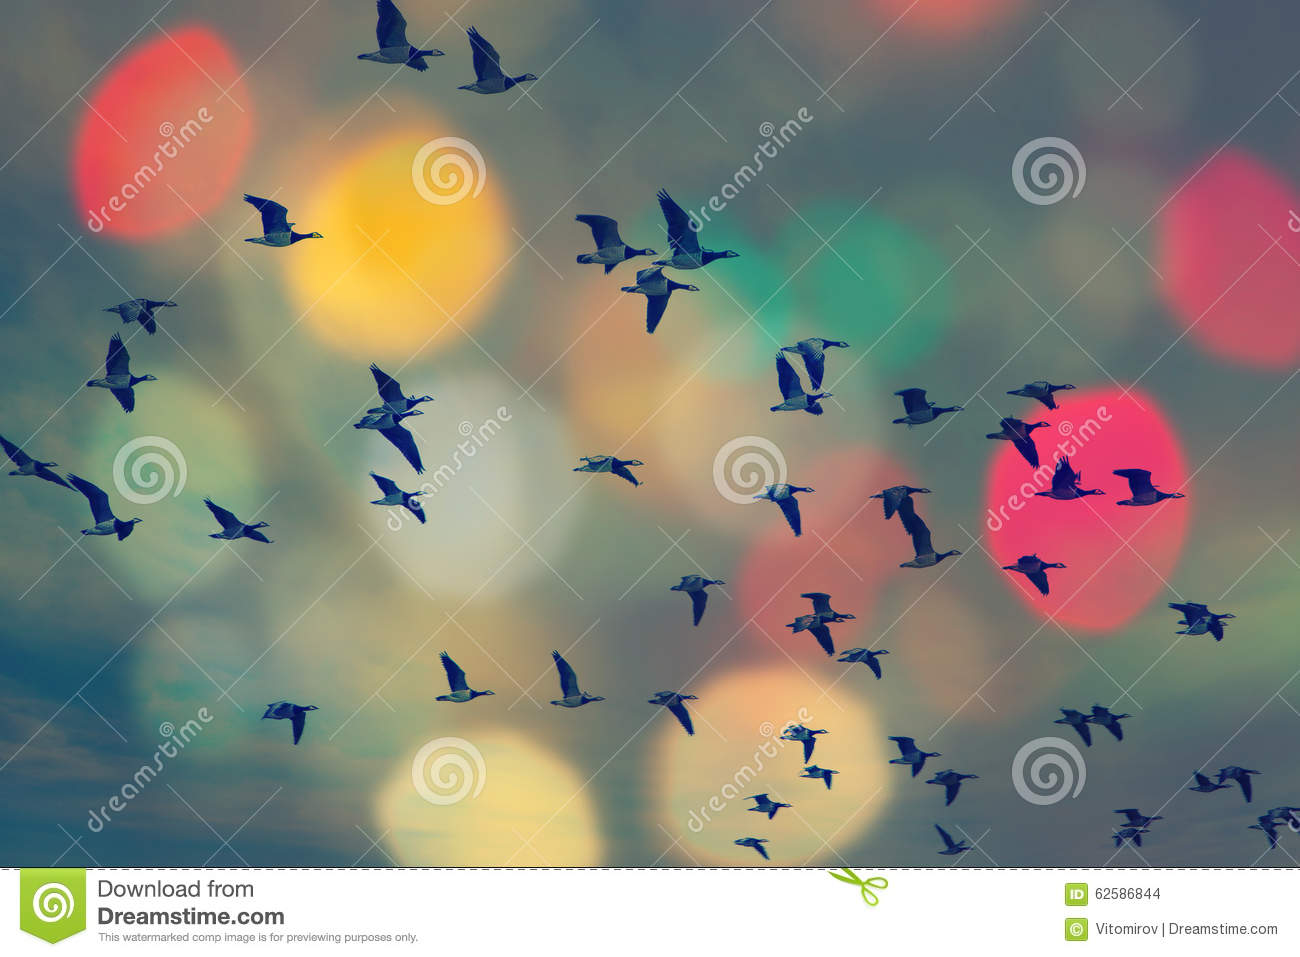 Birds flying and abstract sky ,spring background abstract happy background,freedom birds concept,symbol of liberty